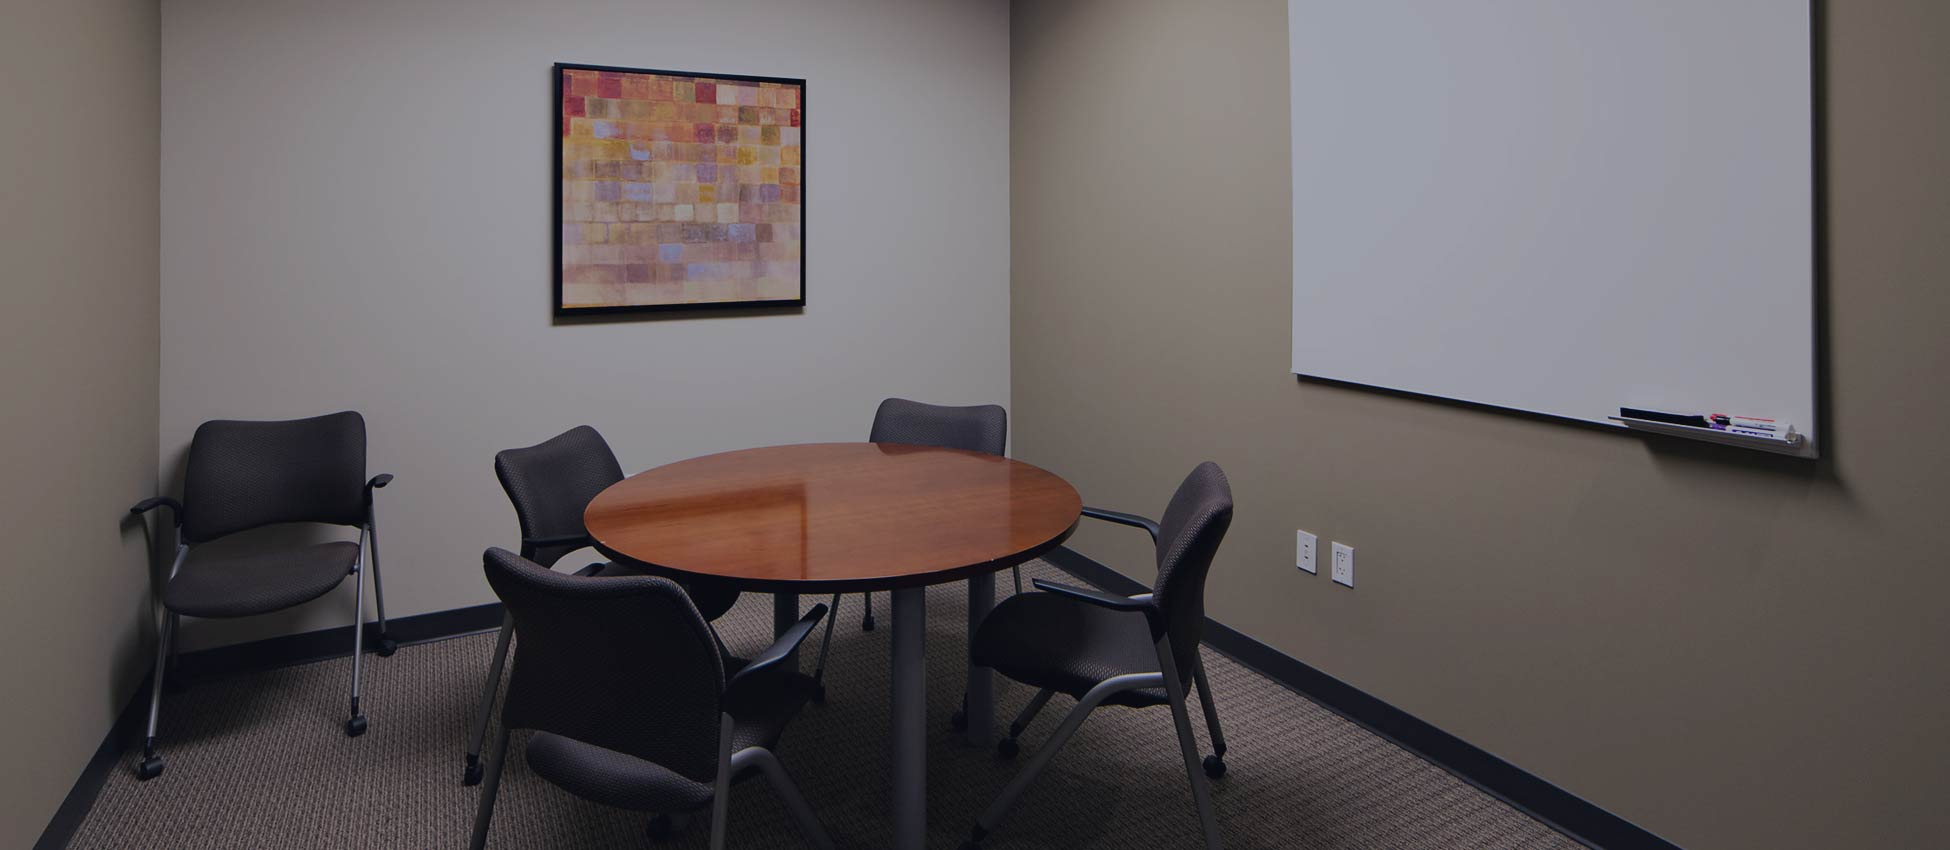 pacific-workplaces-carlsbad-office-space-small-meeting-room